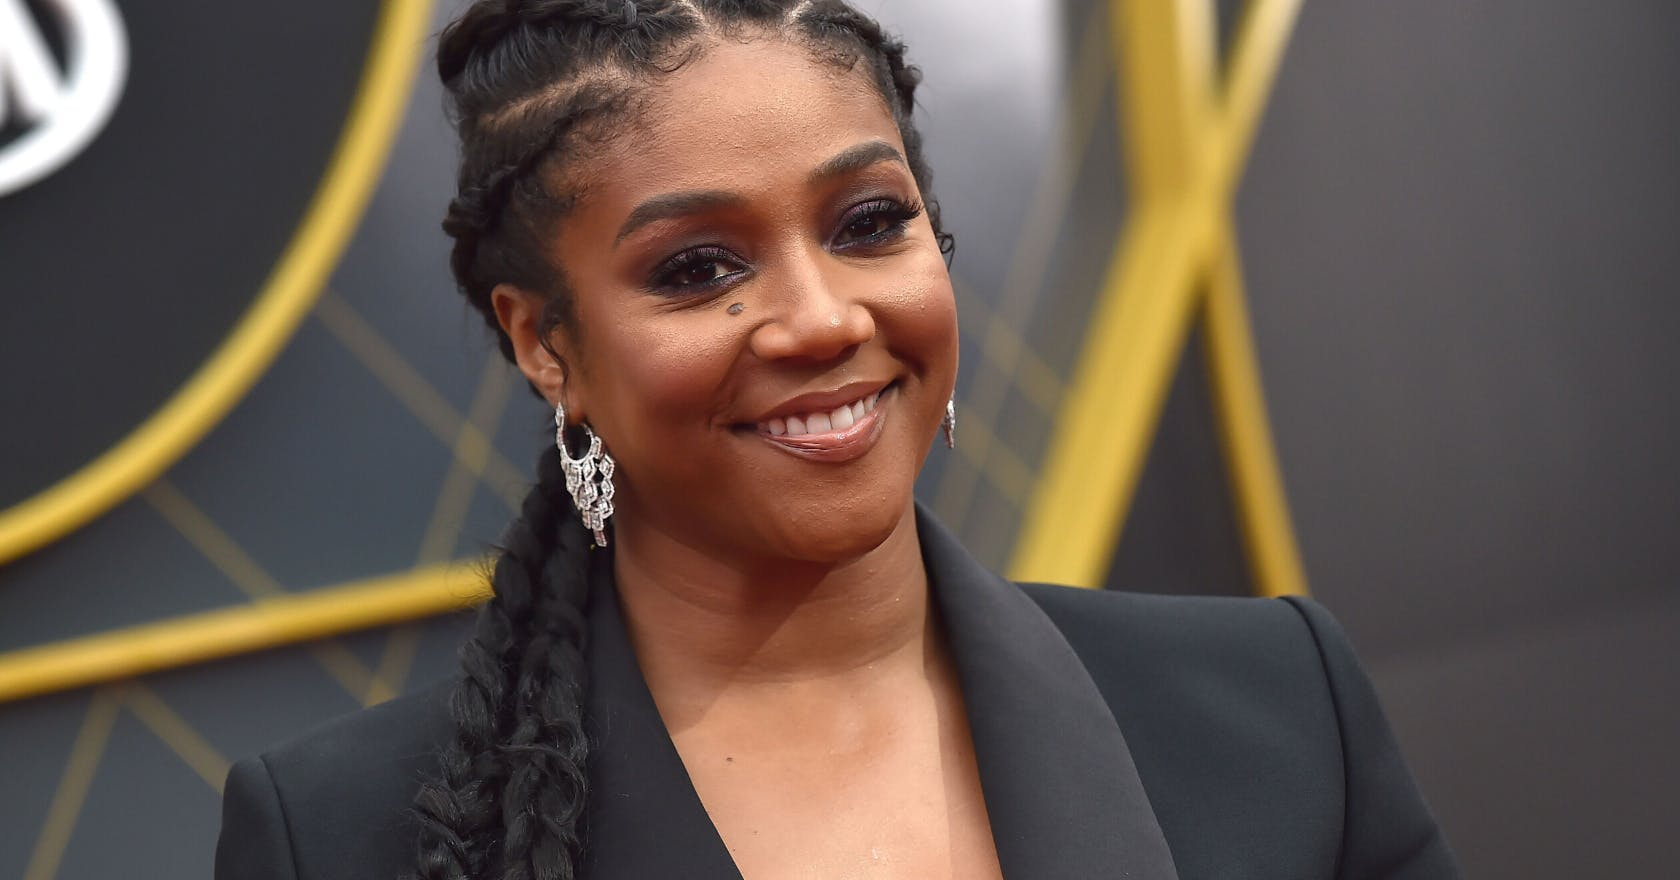 Tiffany Haddish shaved her head on Instagram Live, and shared an empowering message